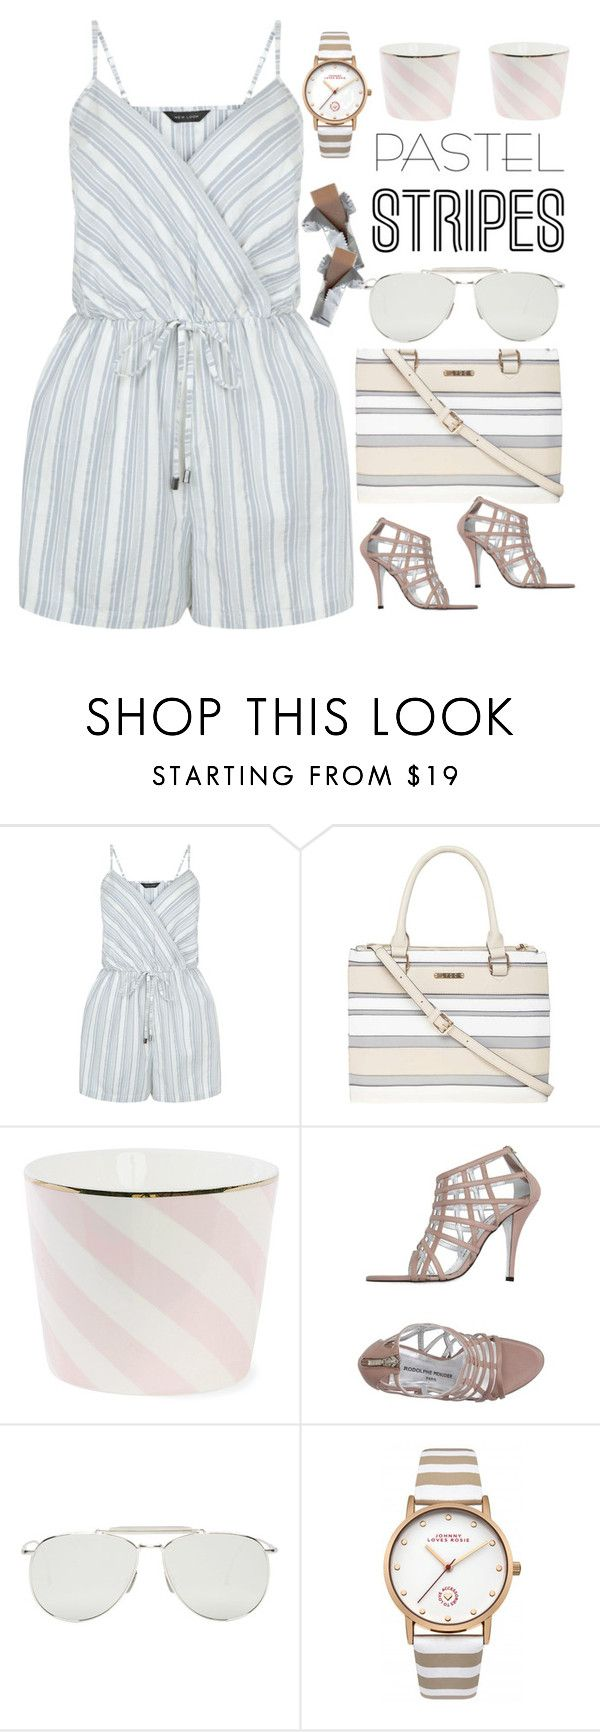 Sophisticated Trend - Pastel Stripes   My Polyvore Finds   Pinterest